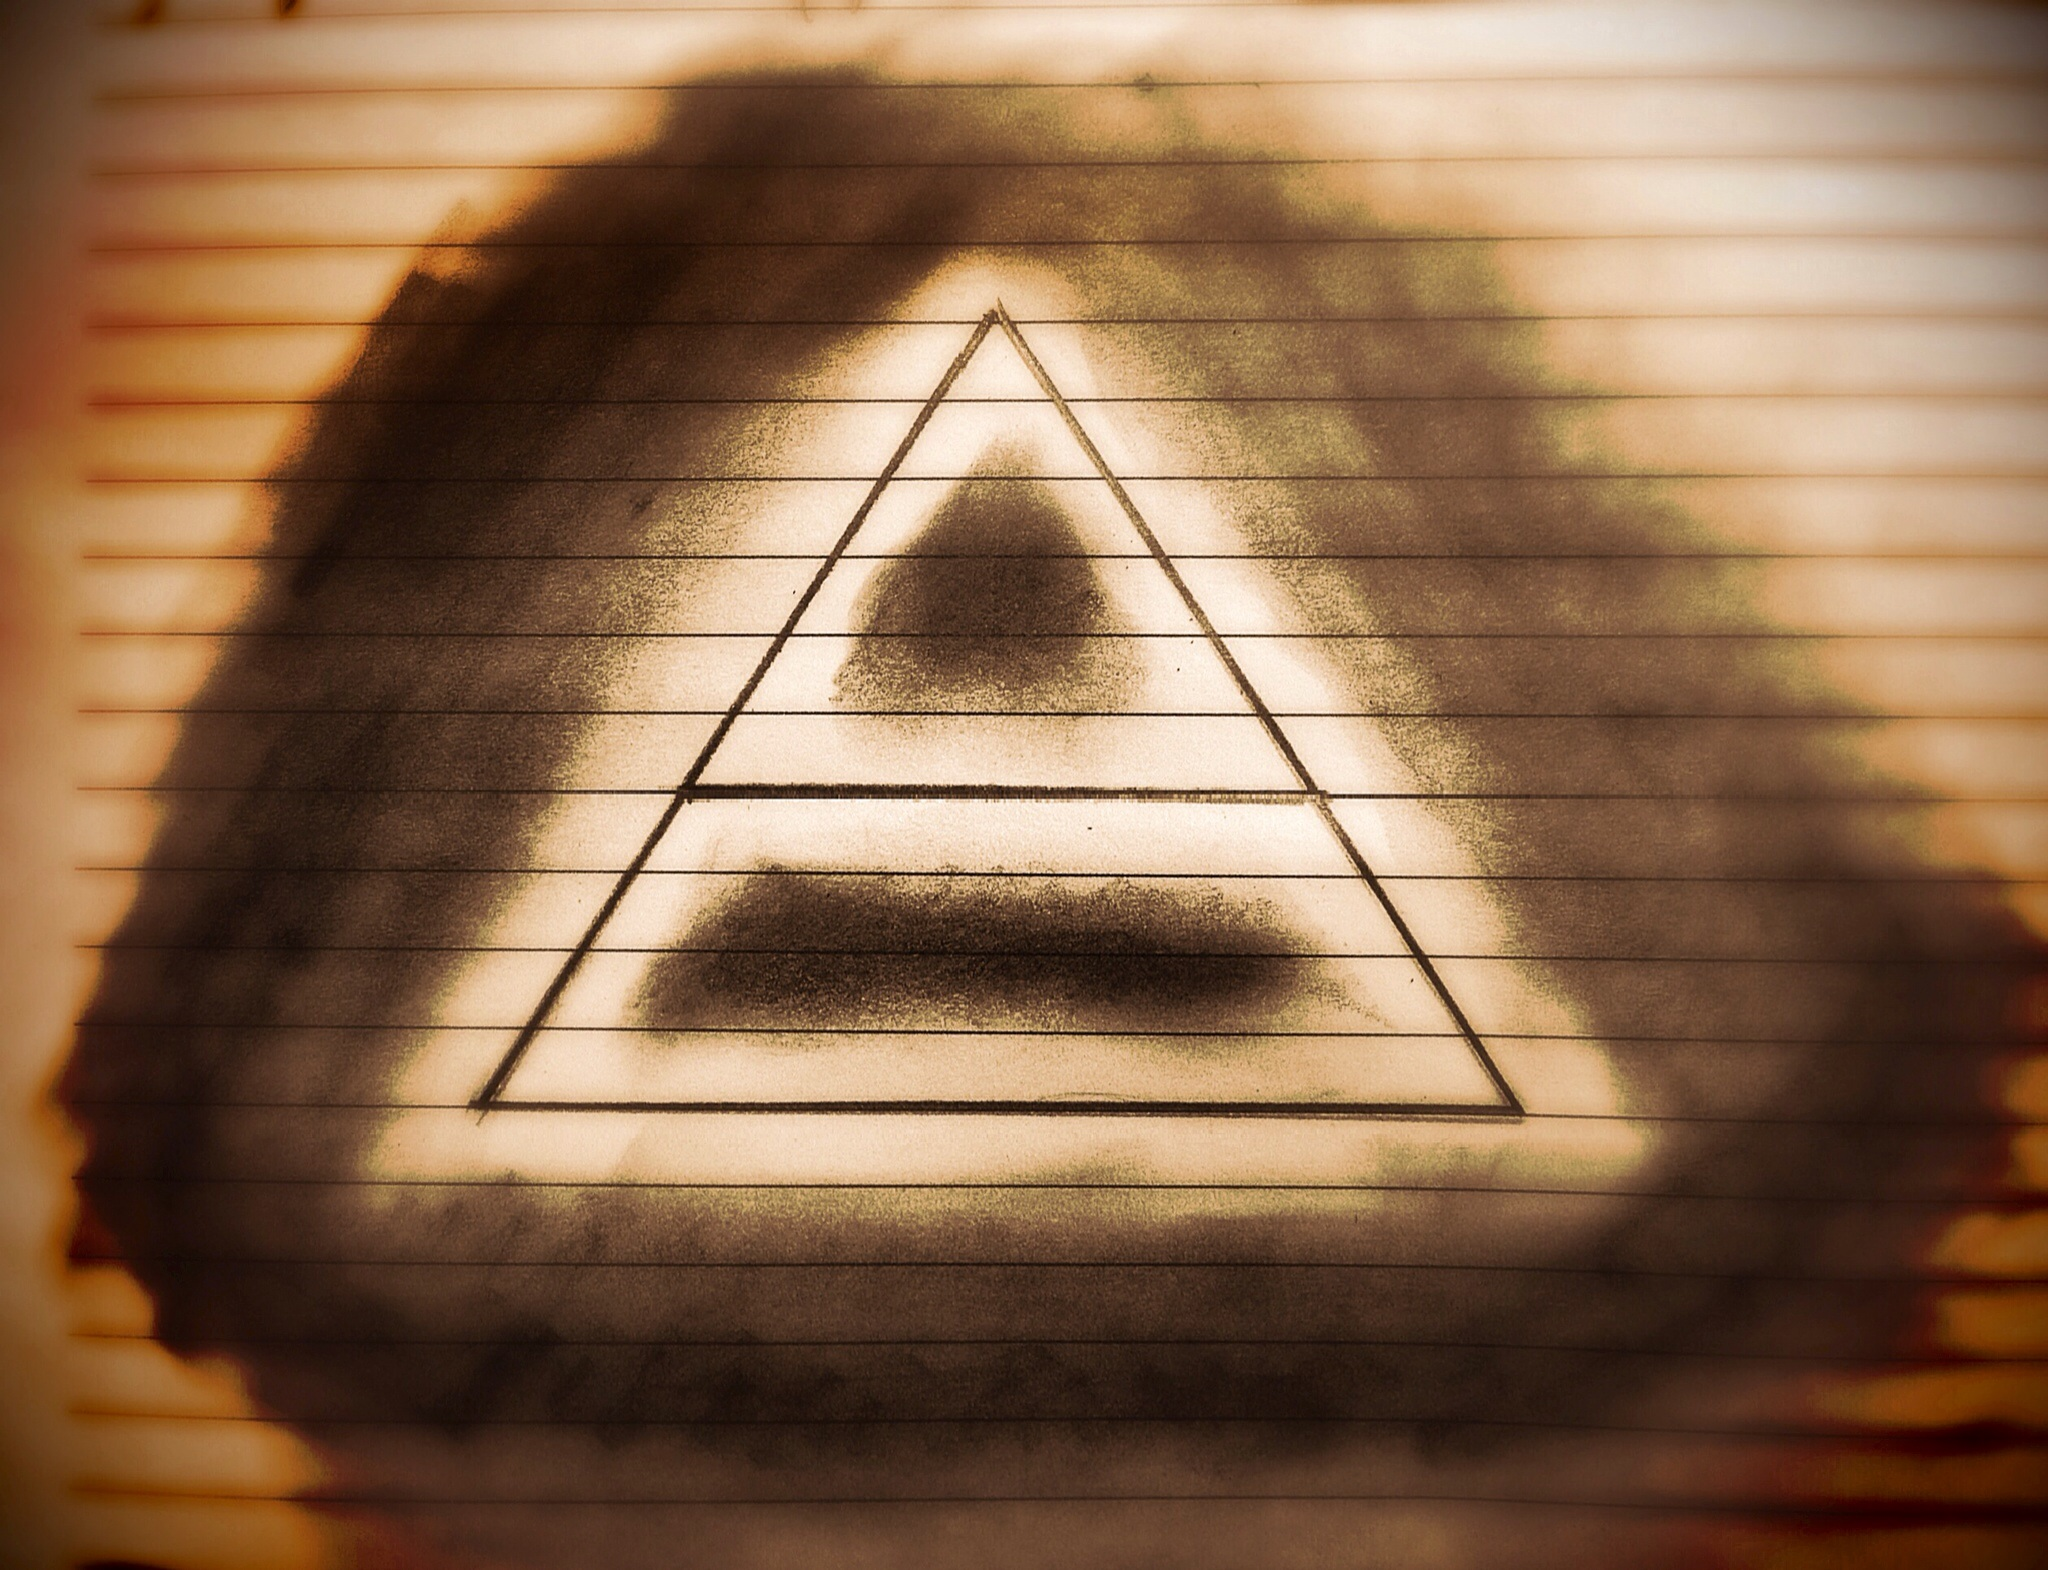 30 Seconds To Mars Images Triad Symbol Hd Wallpaper And Background